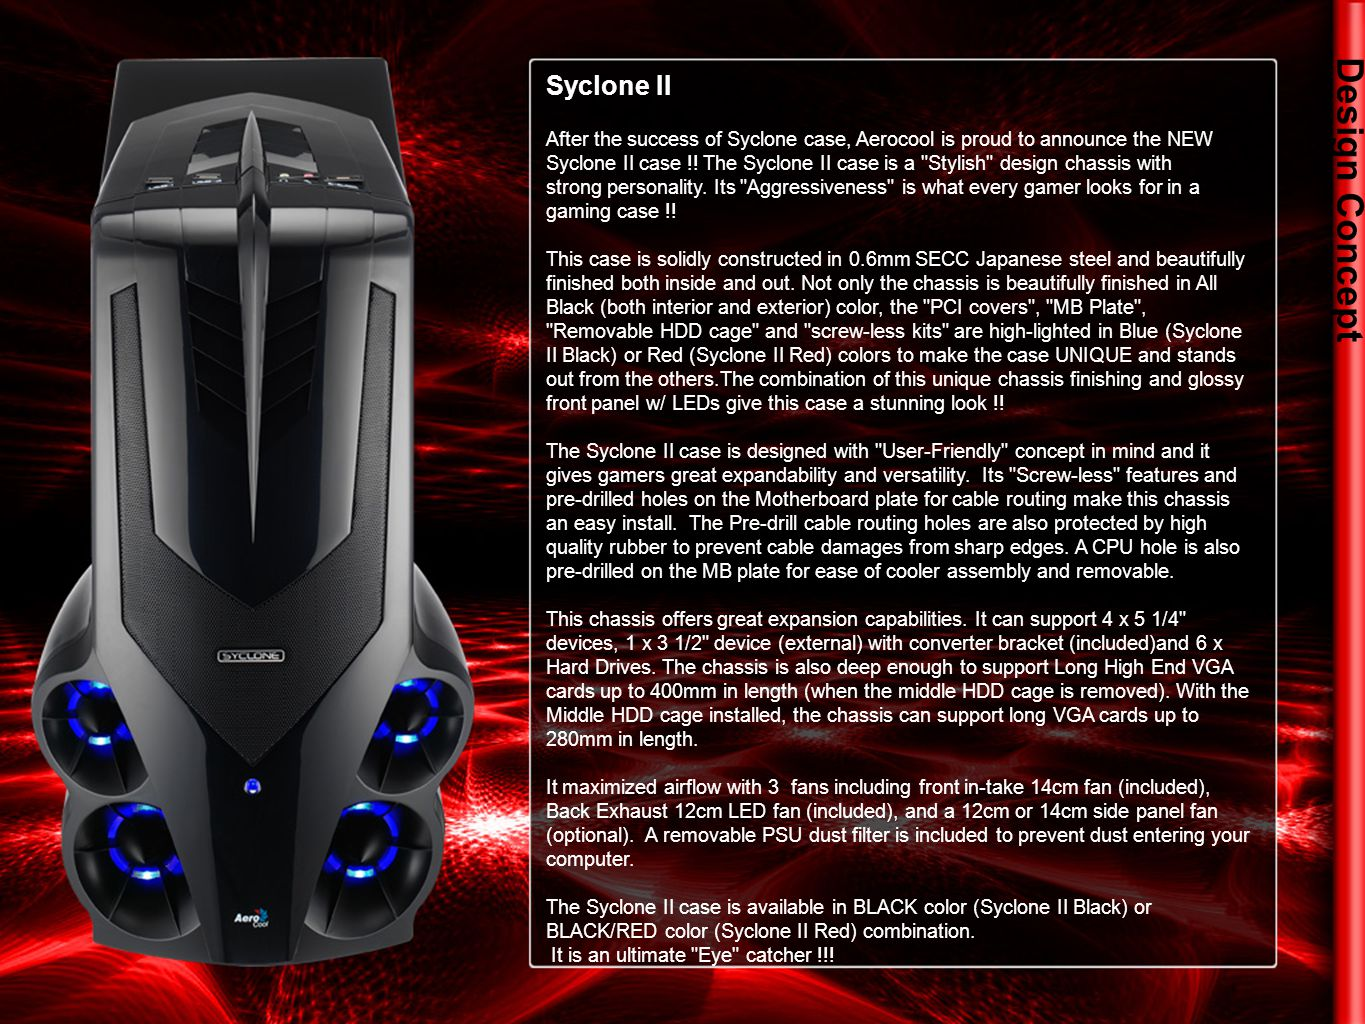 Design Concept Syclone II After the success of Syclone case, Aerocool is proud to announce the NEW Syclone II case !.